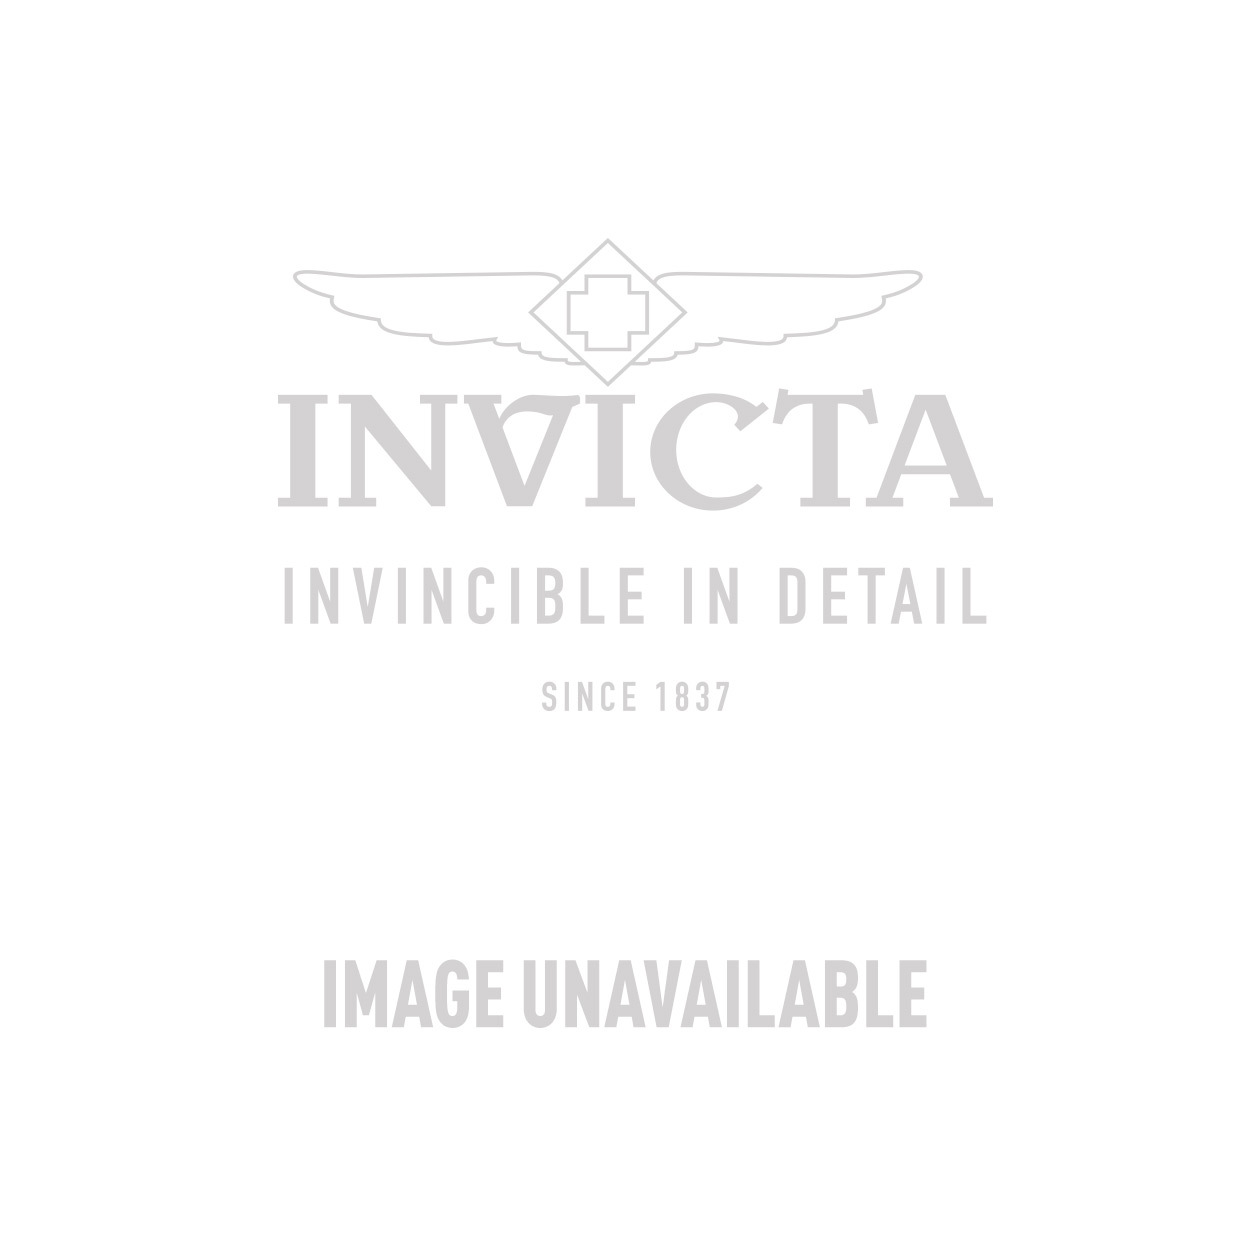 Invicta Bolt Swiss Made Quartz Watch - Black, Stainless Steel case with Steel, Blue tone Stainless Steel, Polyurethane band - Model 6433